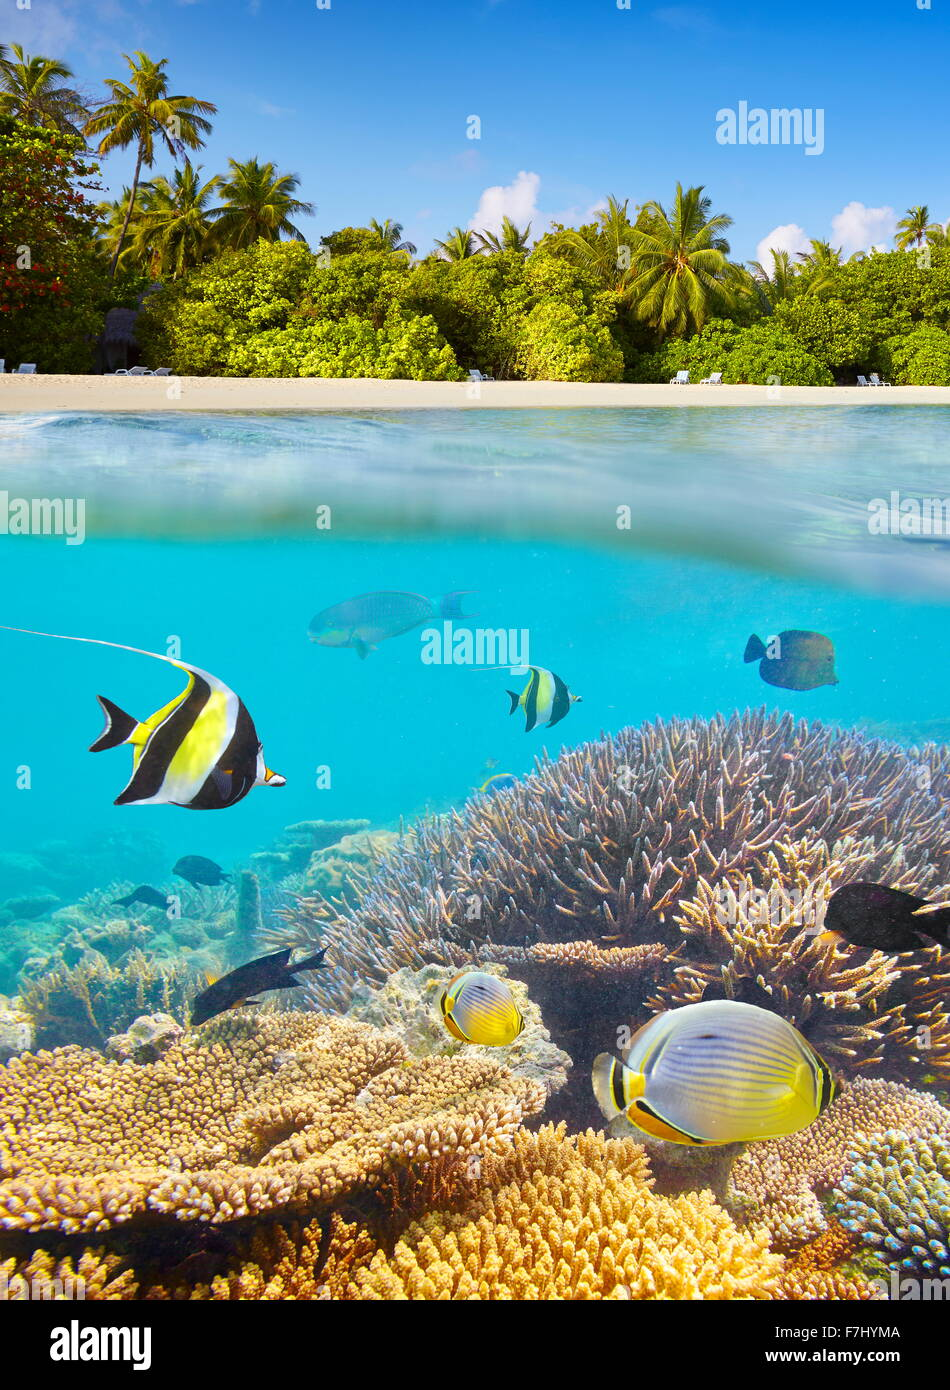 Maldives Islands - underwater view at tropical fish and reef - Stock Image